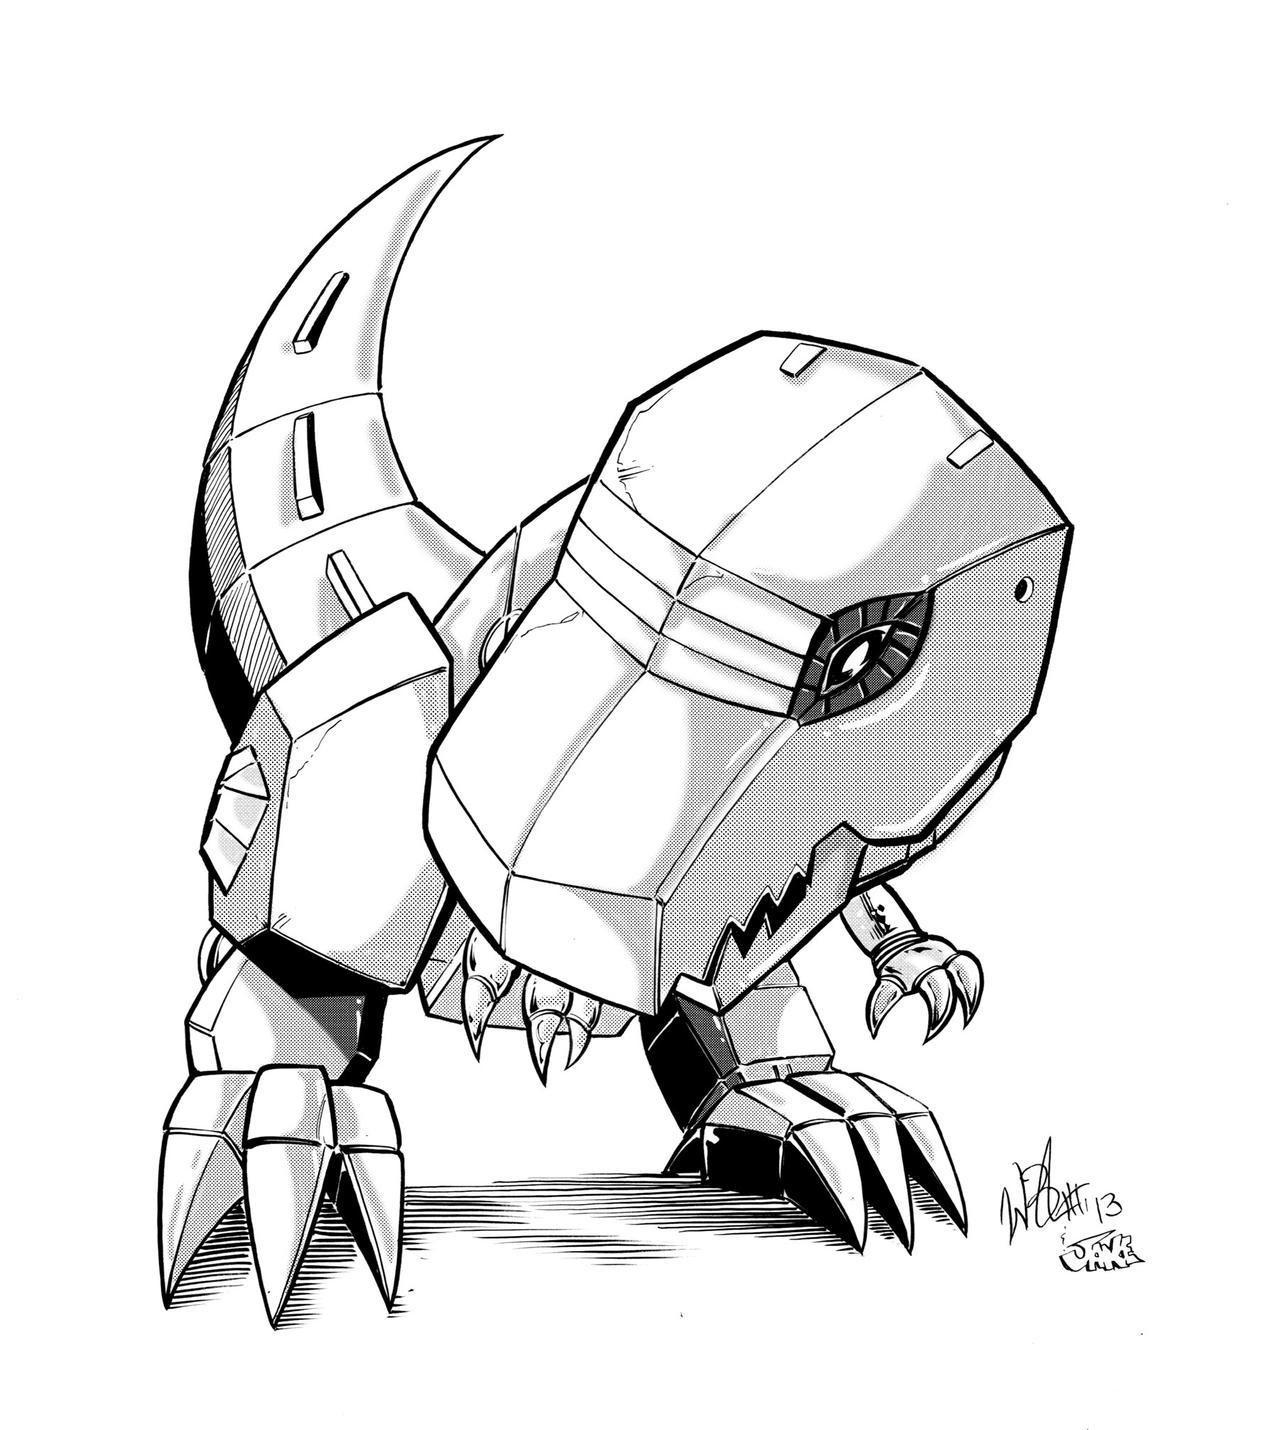 Transformers drawing pages -  Holiday Coloring Pages Bumblebee Transformer Coloring Page Chibi Grimlock By Inker Guy On Deviantart